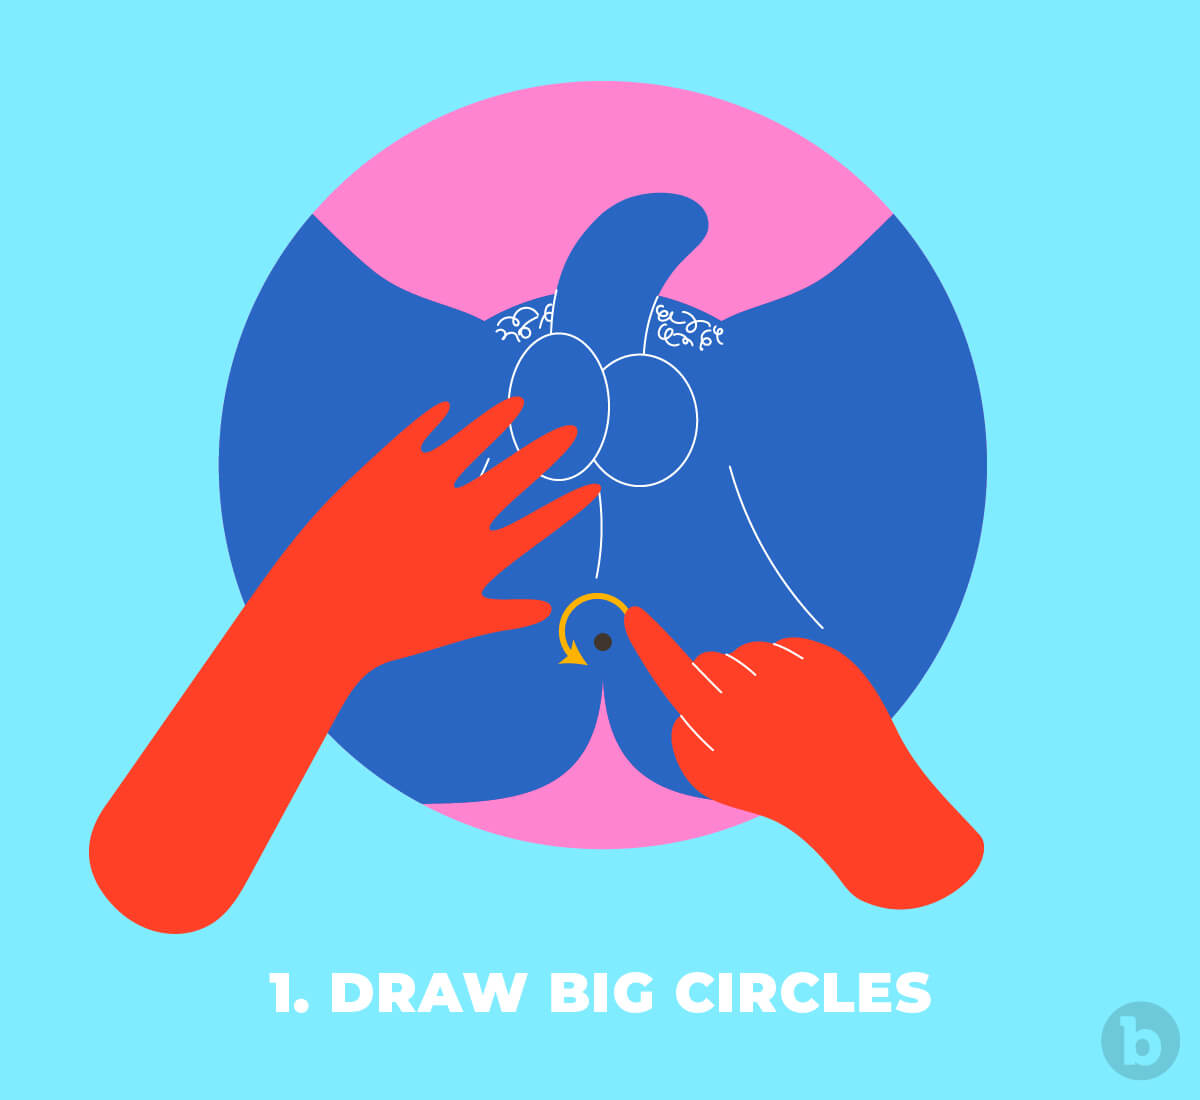 A finger making circular motions around the anus for sexual pleasure